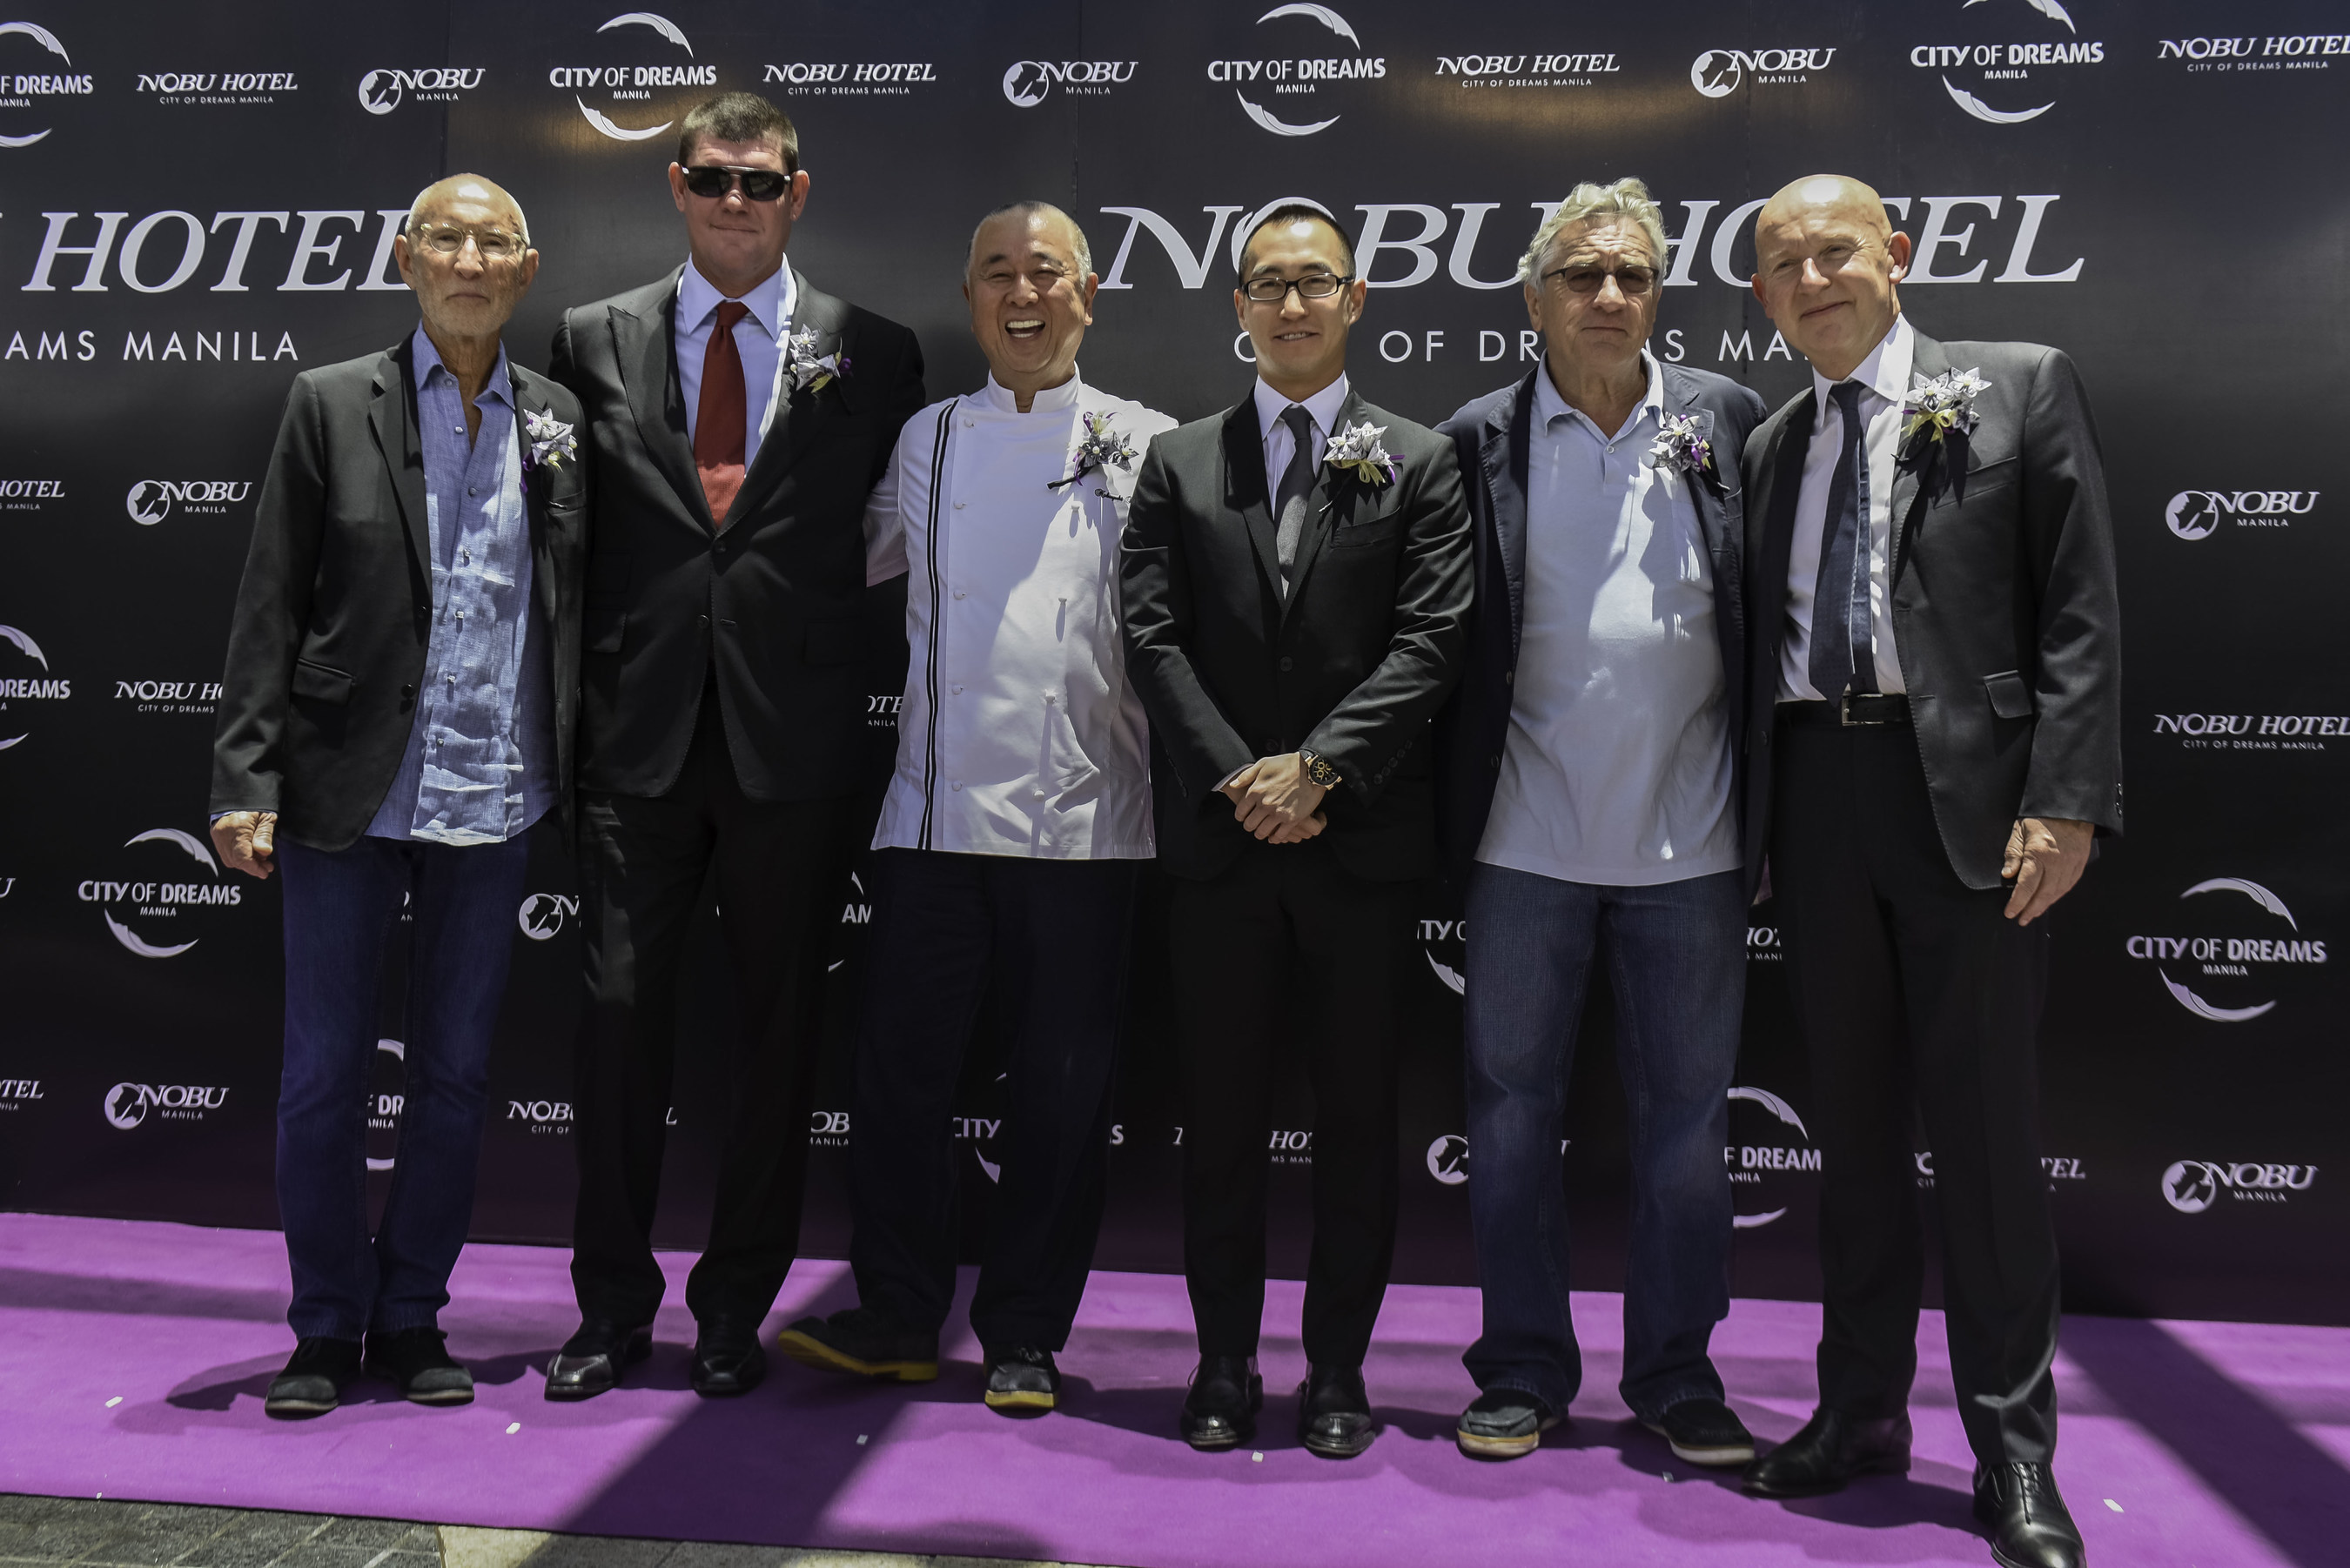 On the 'purple carpet' at the official opening of the first Nobu Hotel in Asia at City of Dreams ...